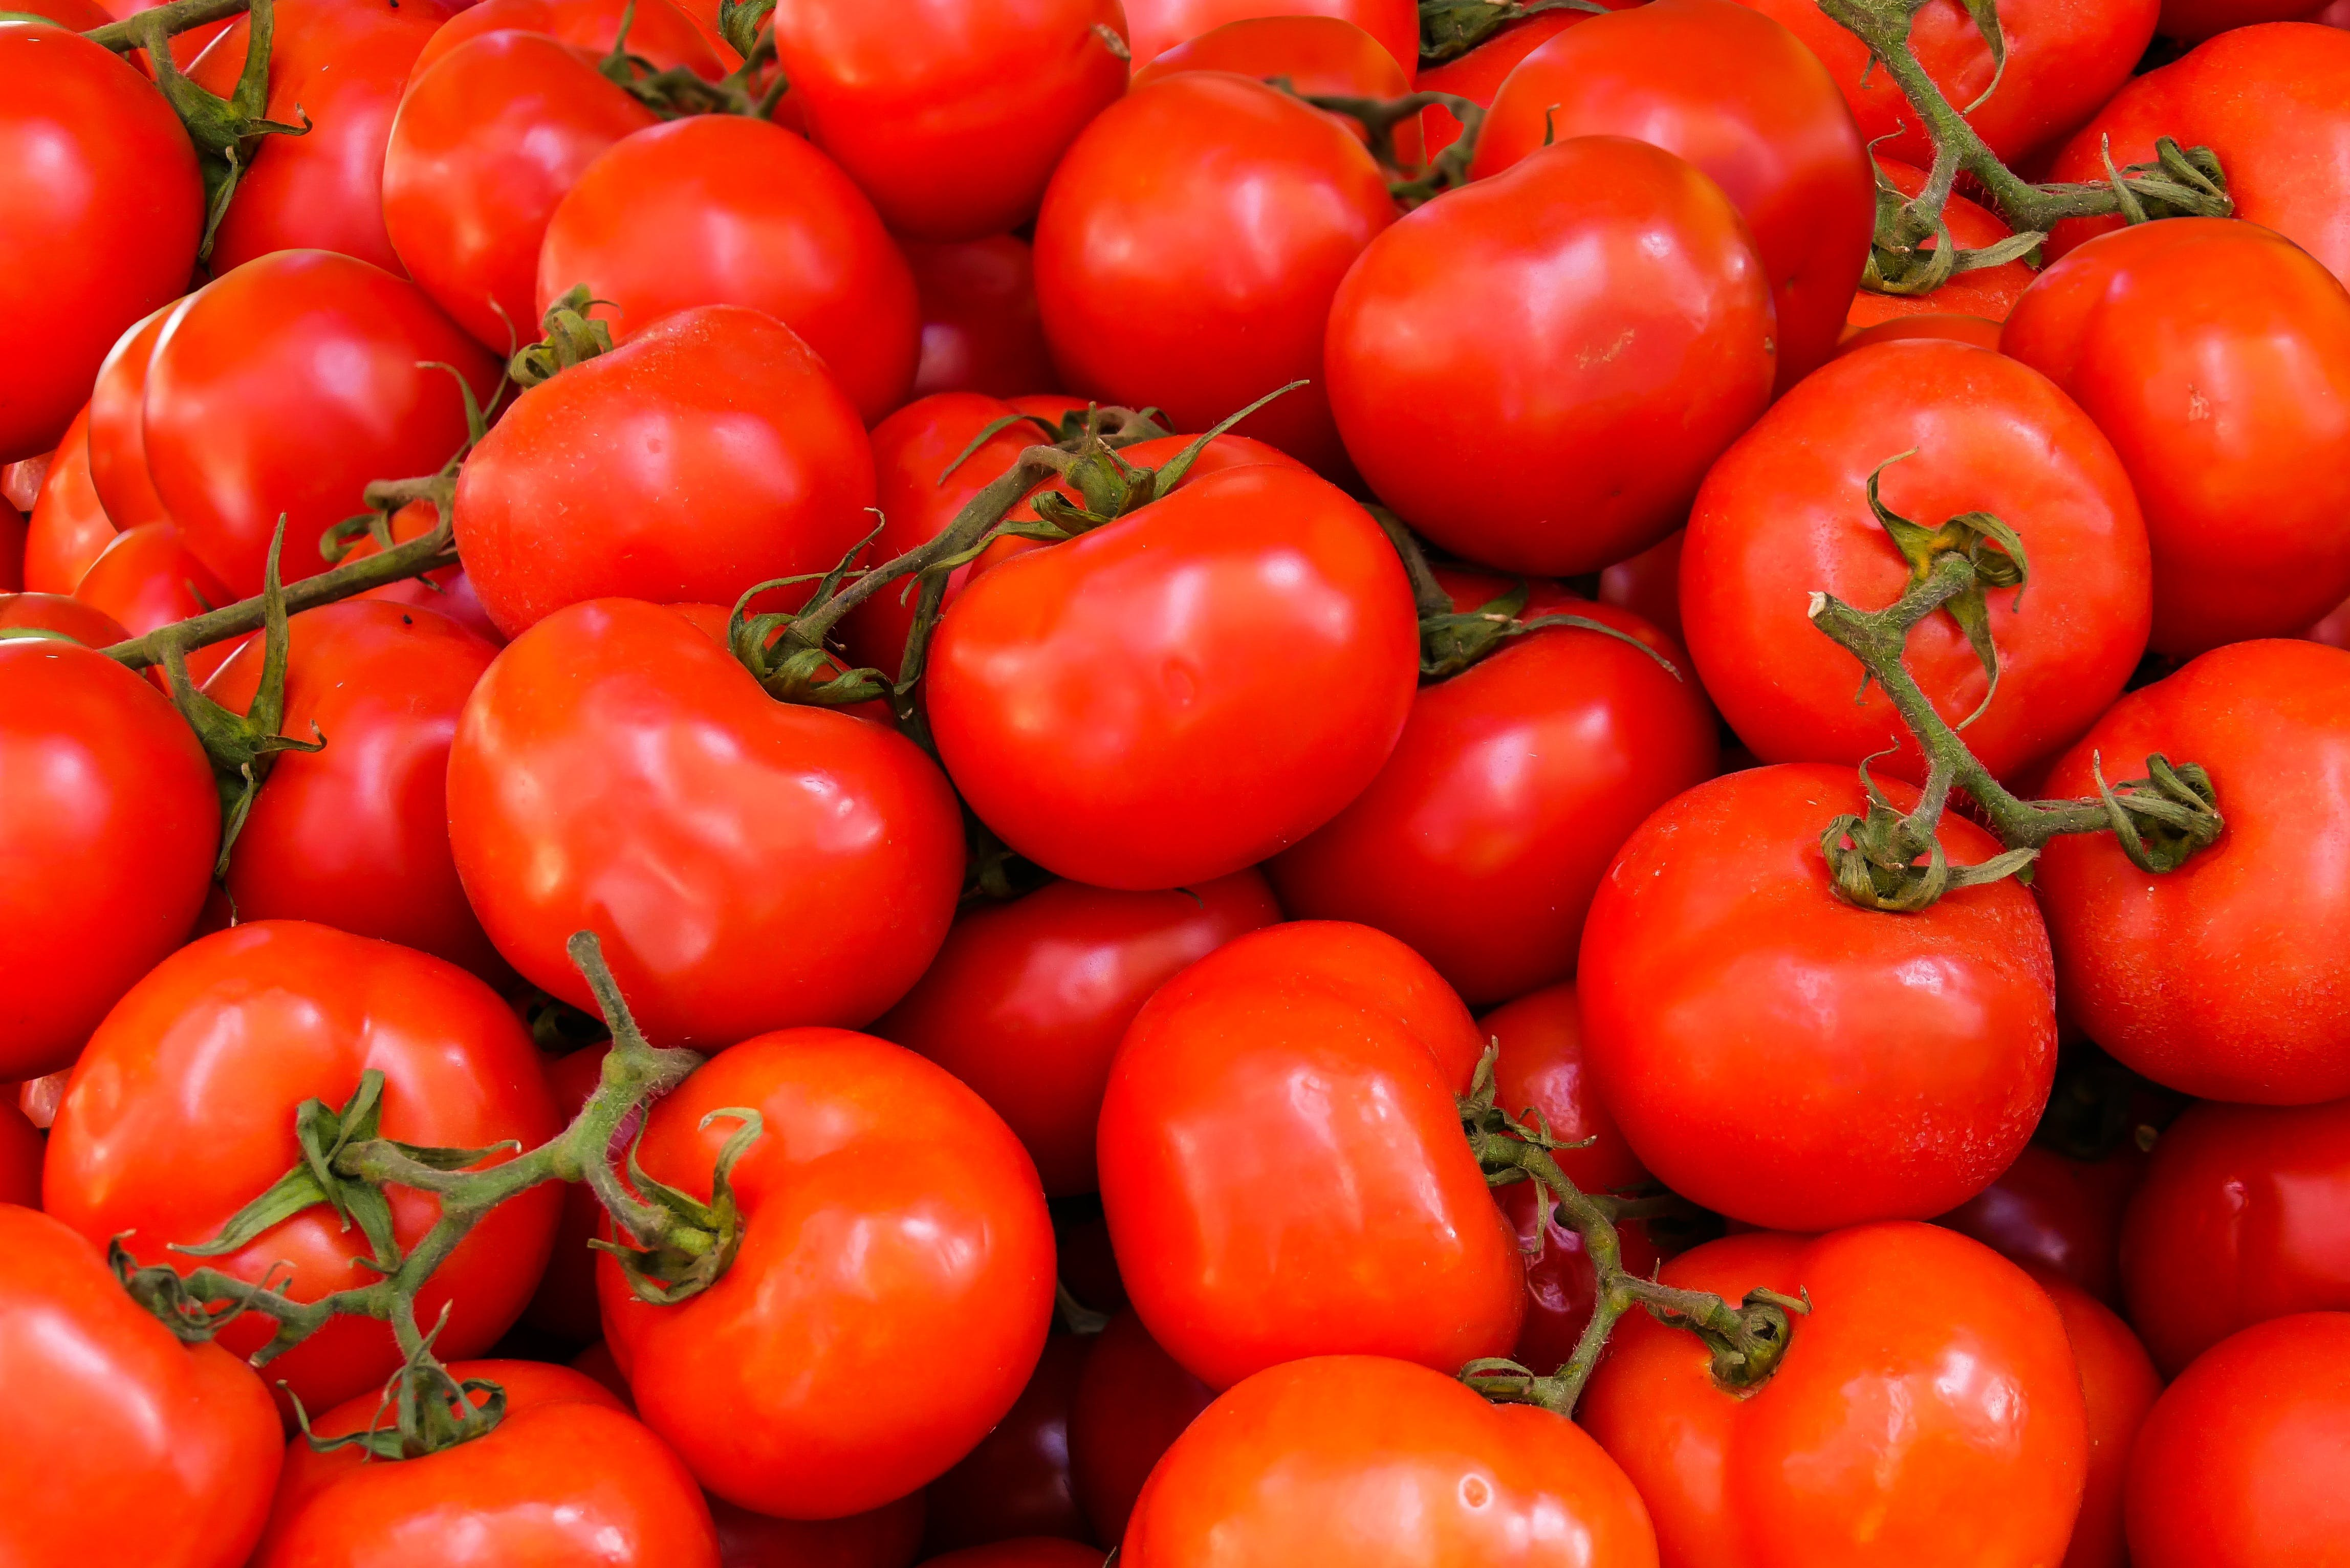 Free stock photo of healthy, tomatoes, agriculture, fresh